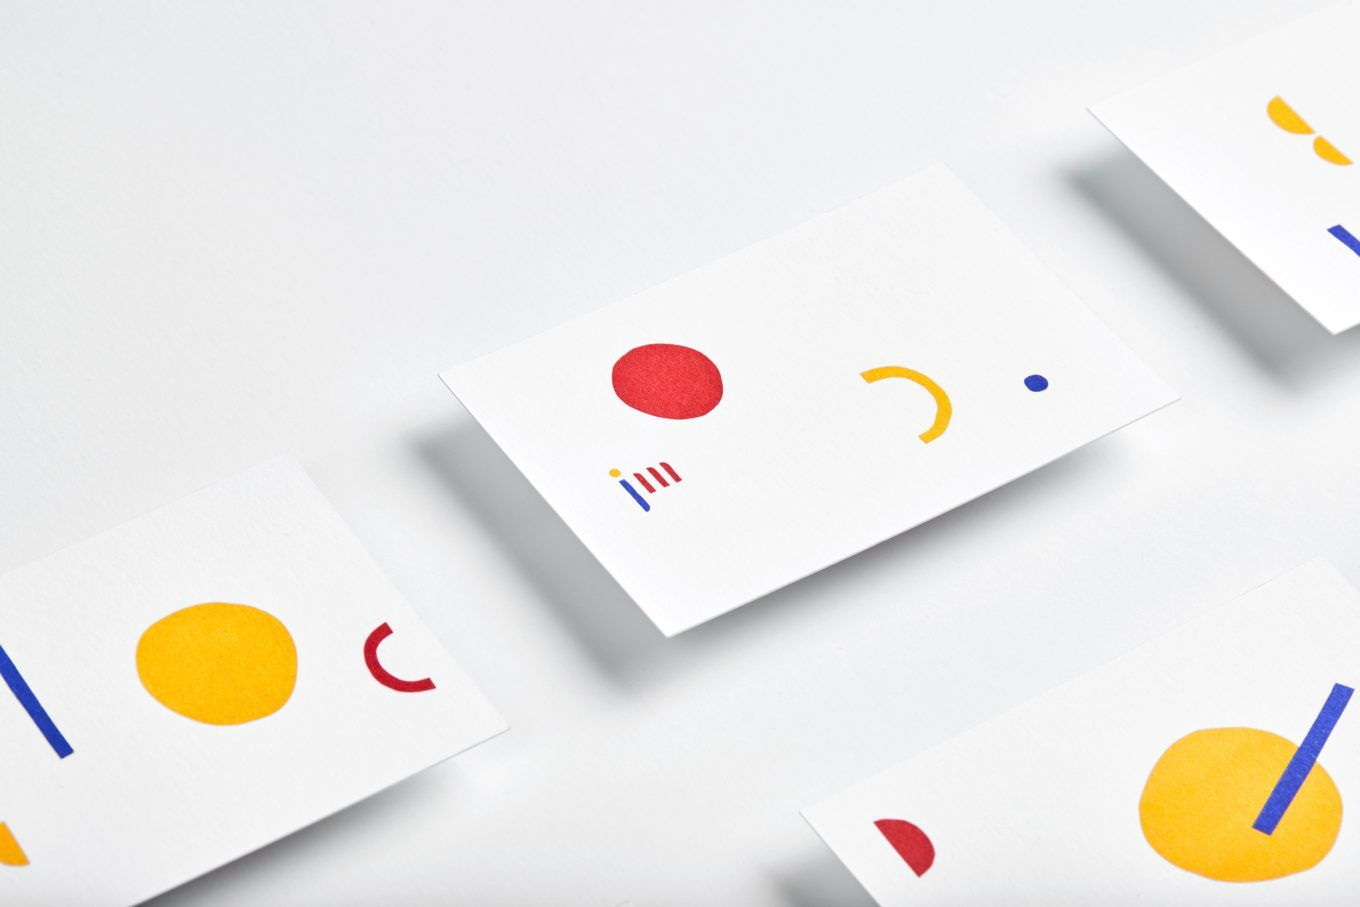 New branding packaging for january moon by perky bros bpo january moon by perky bros united states branding businesscards stationery colourmoves